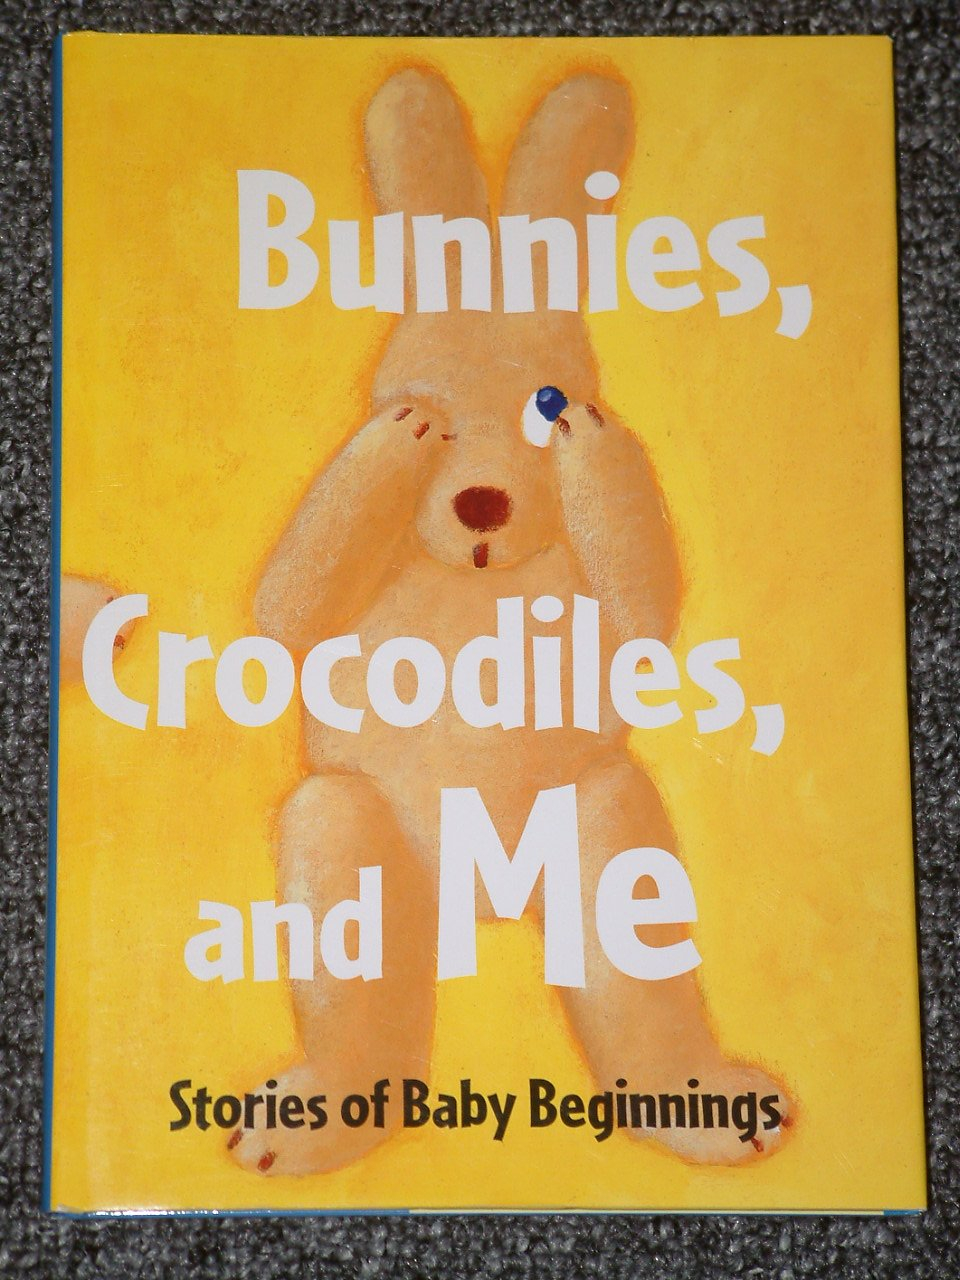 Bunnies, Crocodiles, and Me Stories of Baby Beginnings 1999